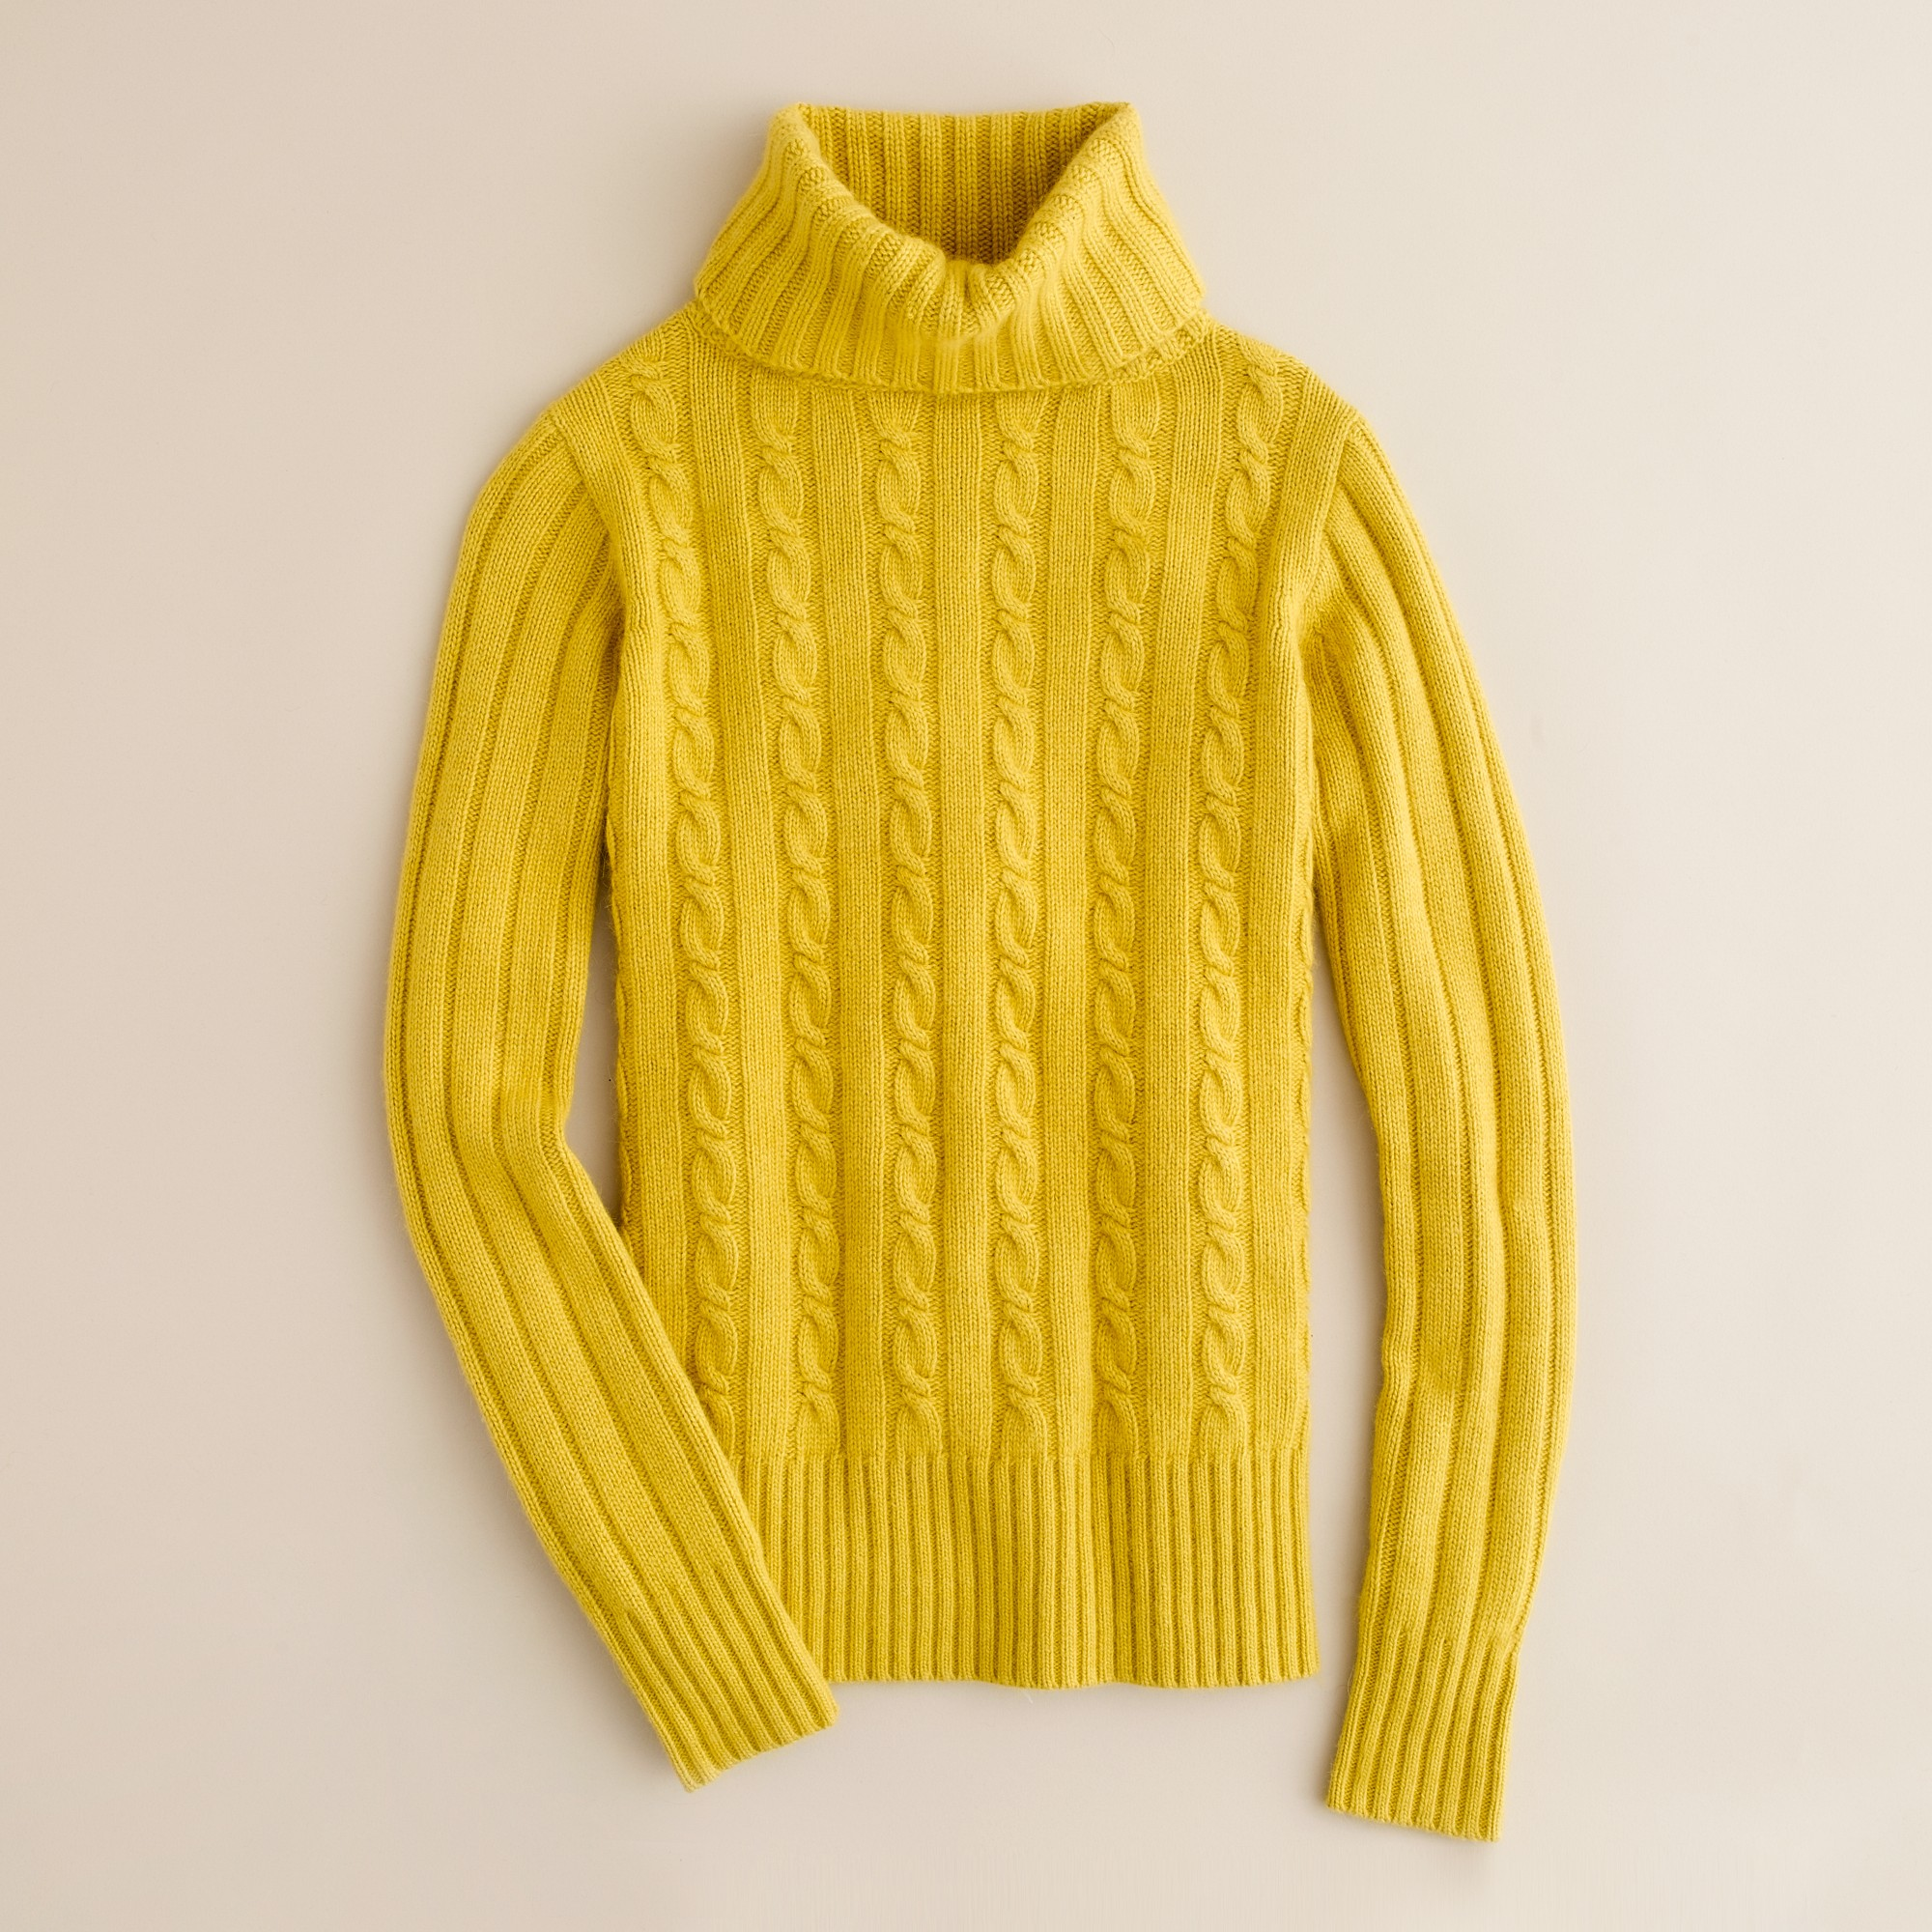 J.crew Cambridge Cable Chunky Turtleneck Sweater in Yellow | Lyst